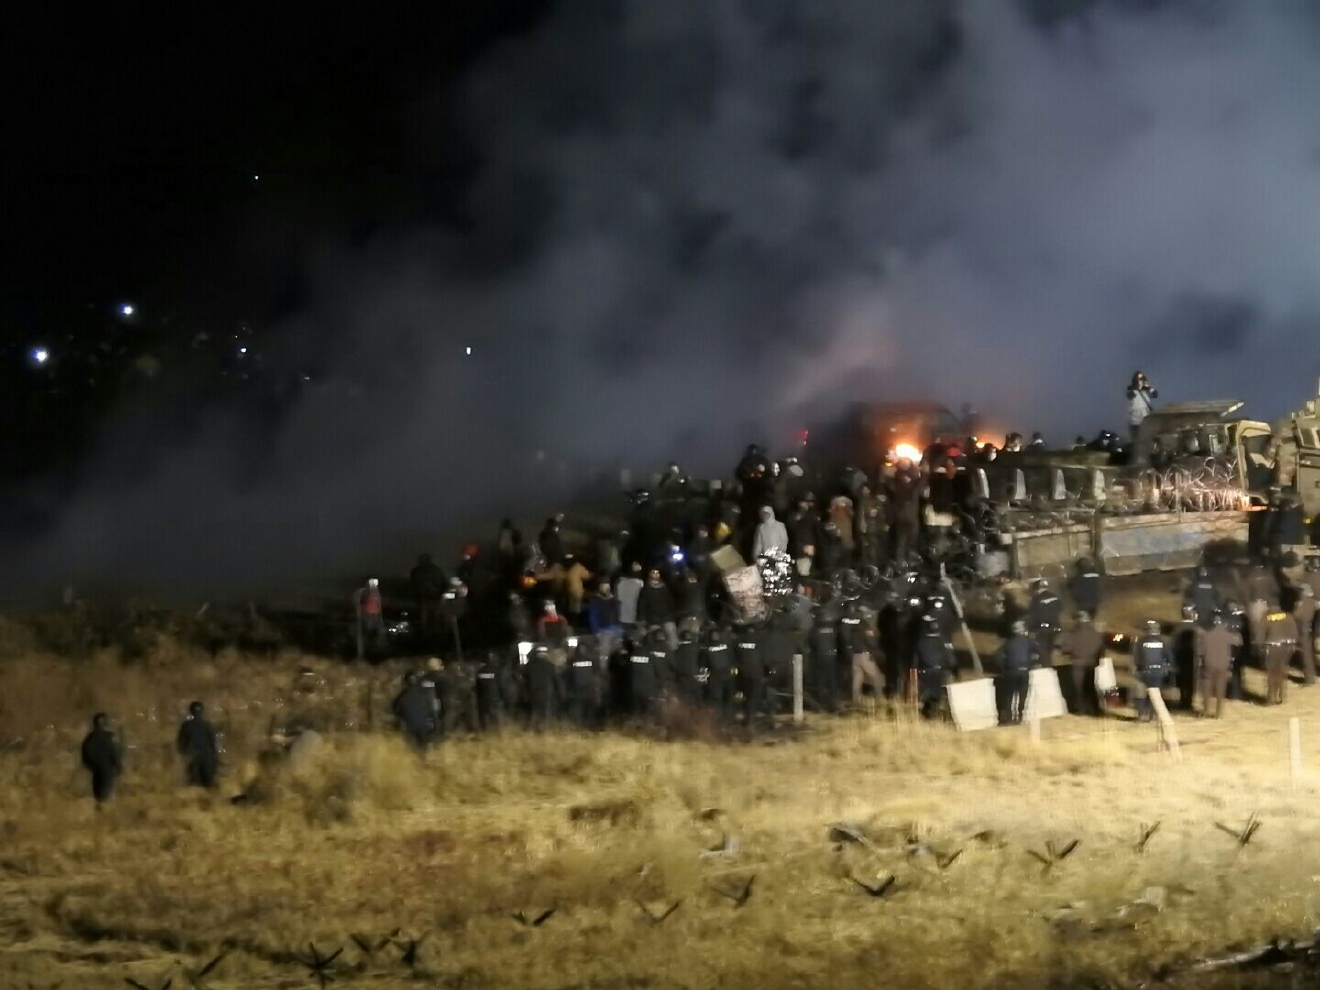 In this image provided by Morton County Sheriff's Department, law enforcement and protesters clash near the site of the Dakota Access pipeline on Sunday, Nov. 20, 2016, in Cannon Ball, N.D. At least one person arrested as protesters sought to push past a bridge on a state highway that had been blockaded since late October. (Morton County Sheriff's Department via AP)